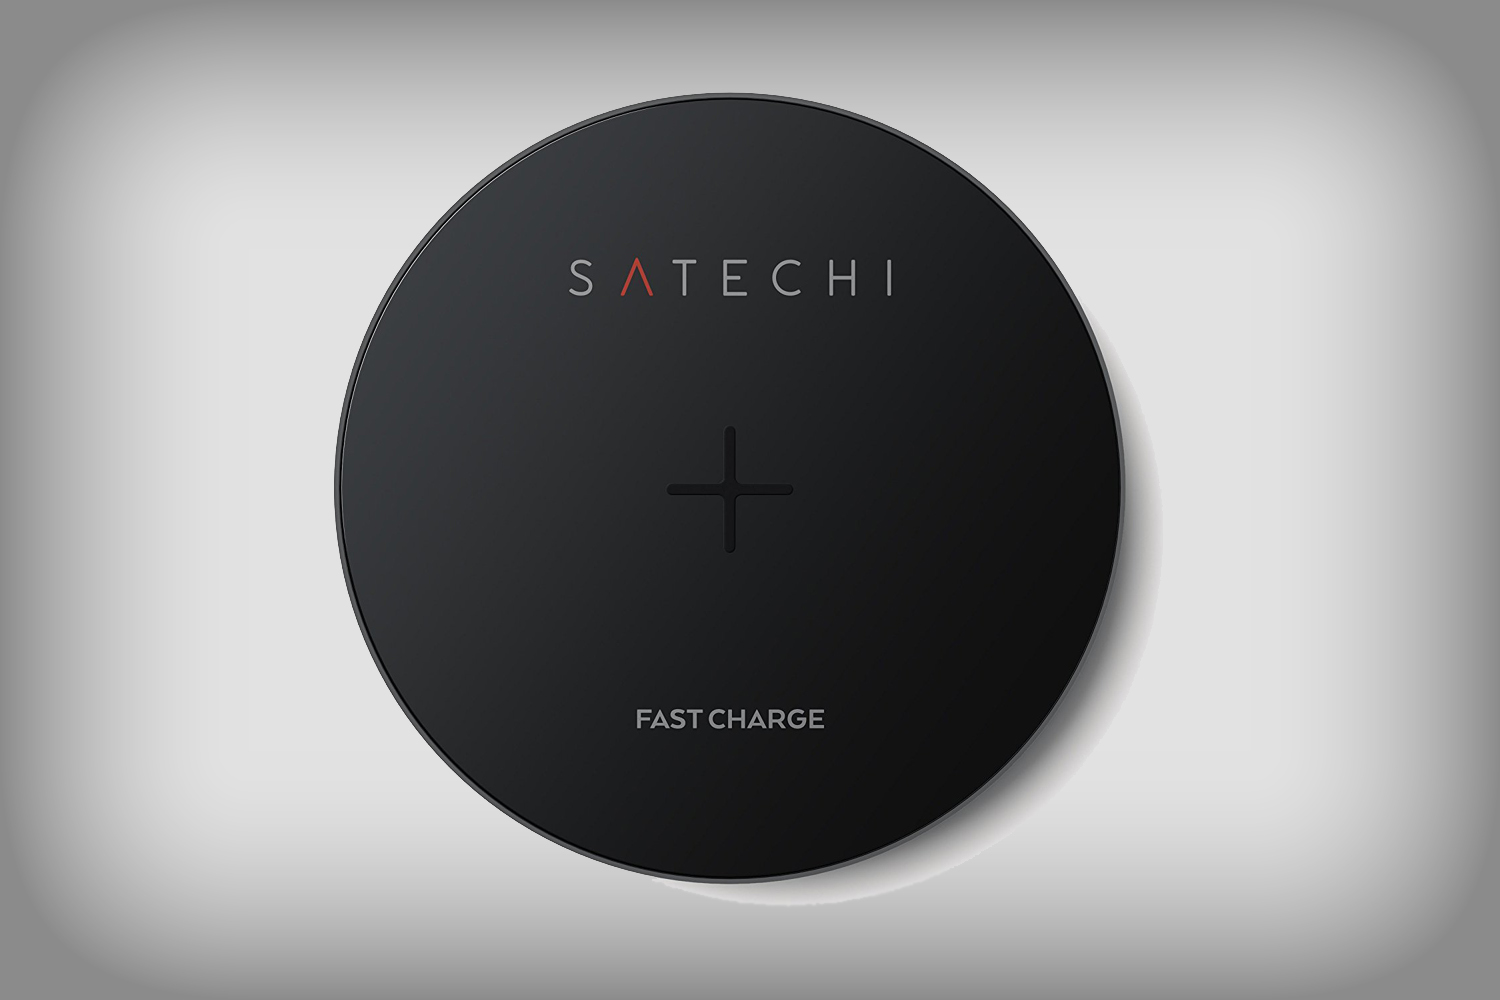 Satechi Wireless Charging Pad Deal: $25 on Amazon | Digital Trends